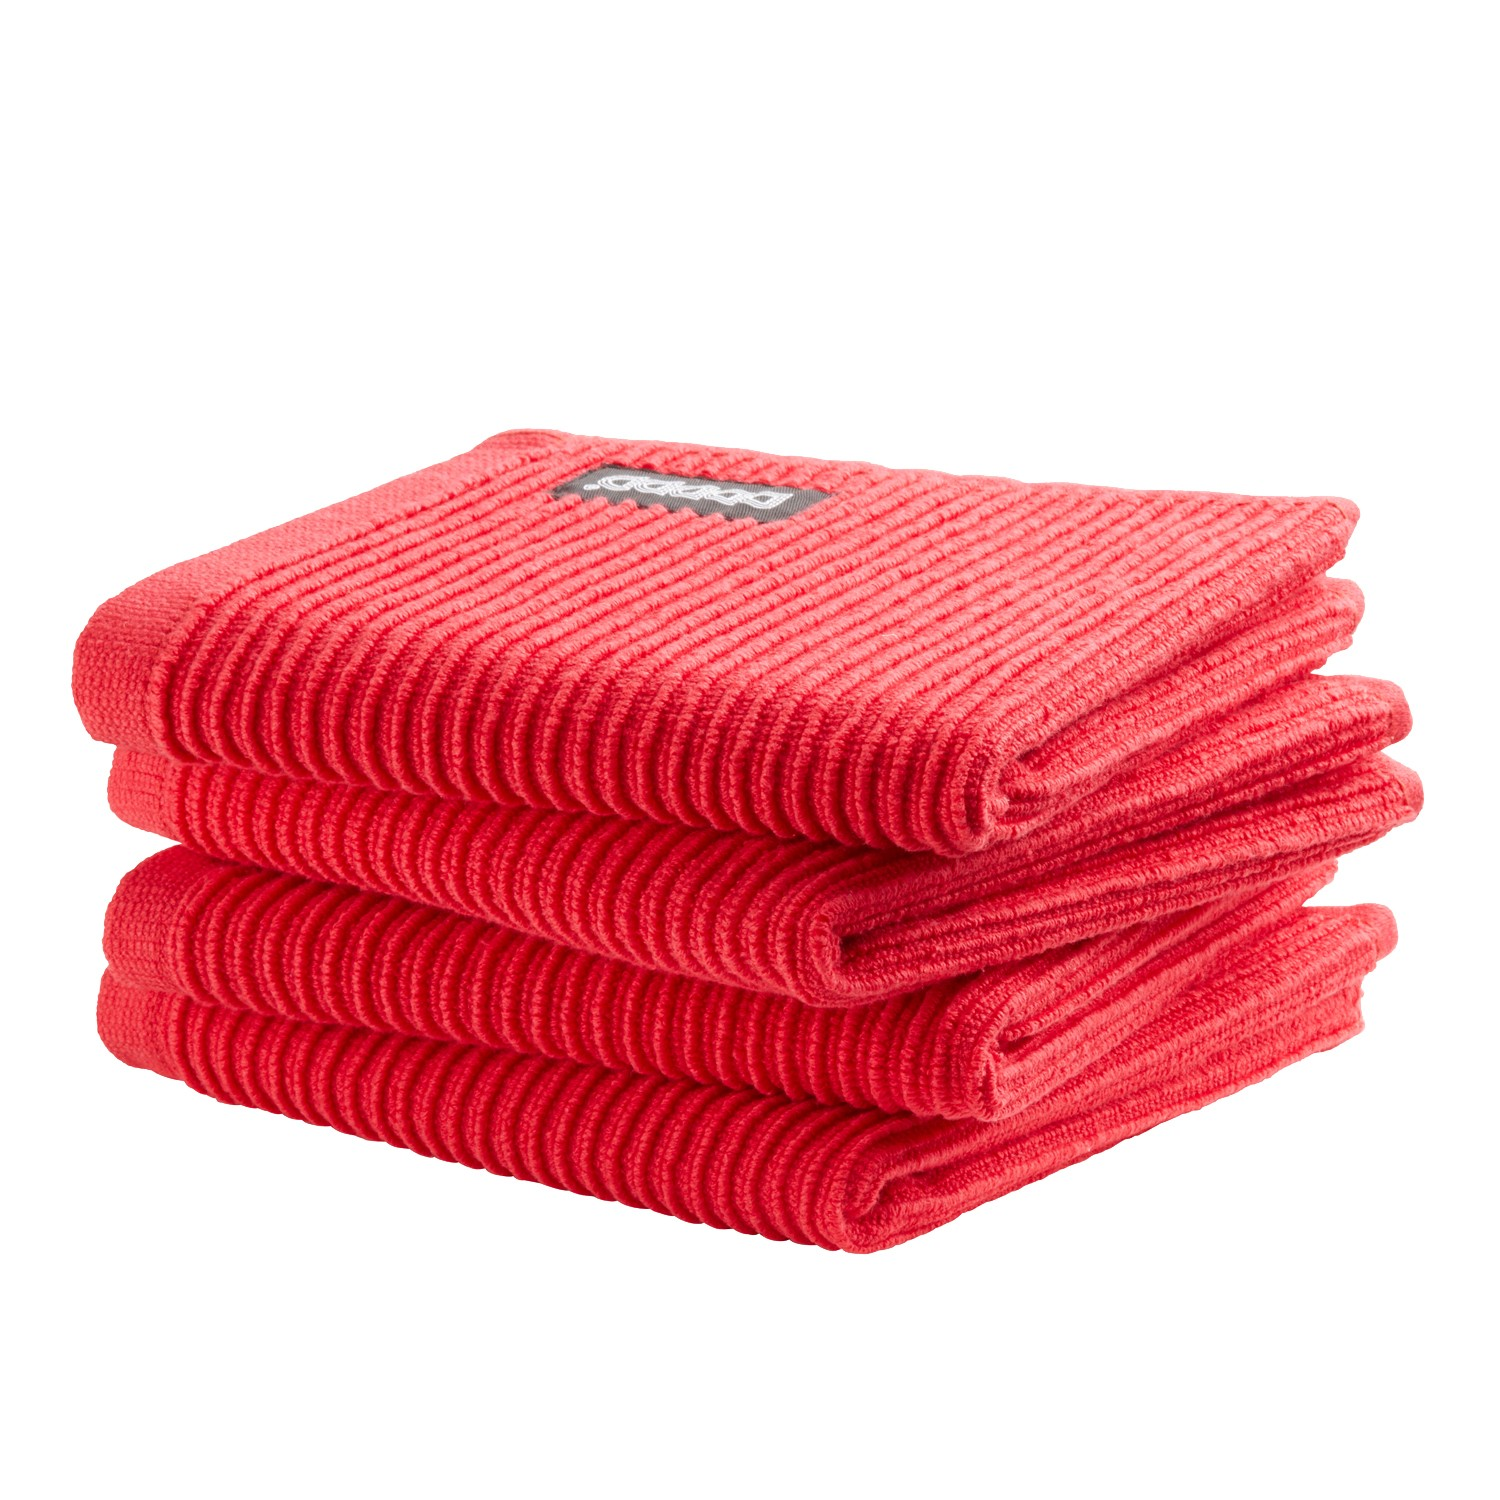 Vaatdoek Basic Clean | Classic red | 30 x 30 cm